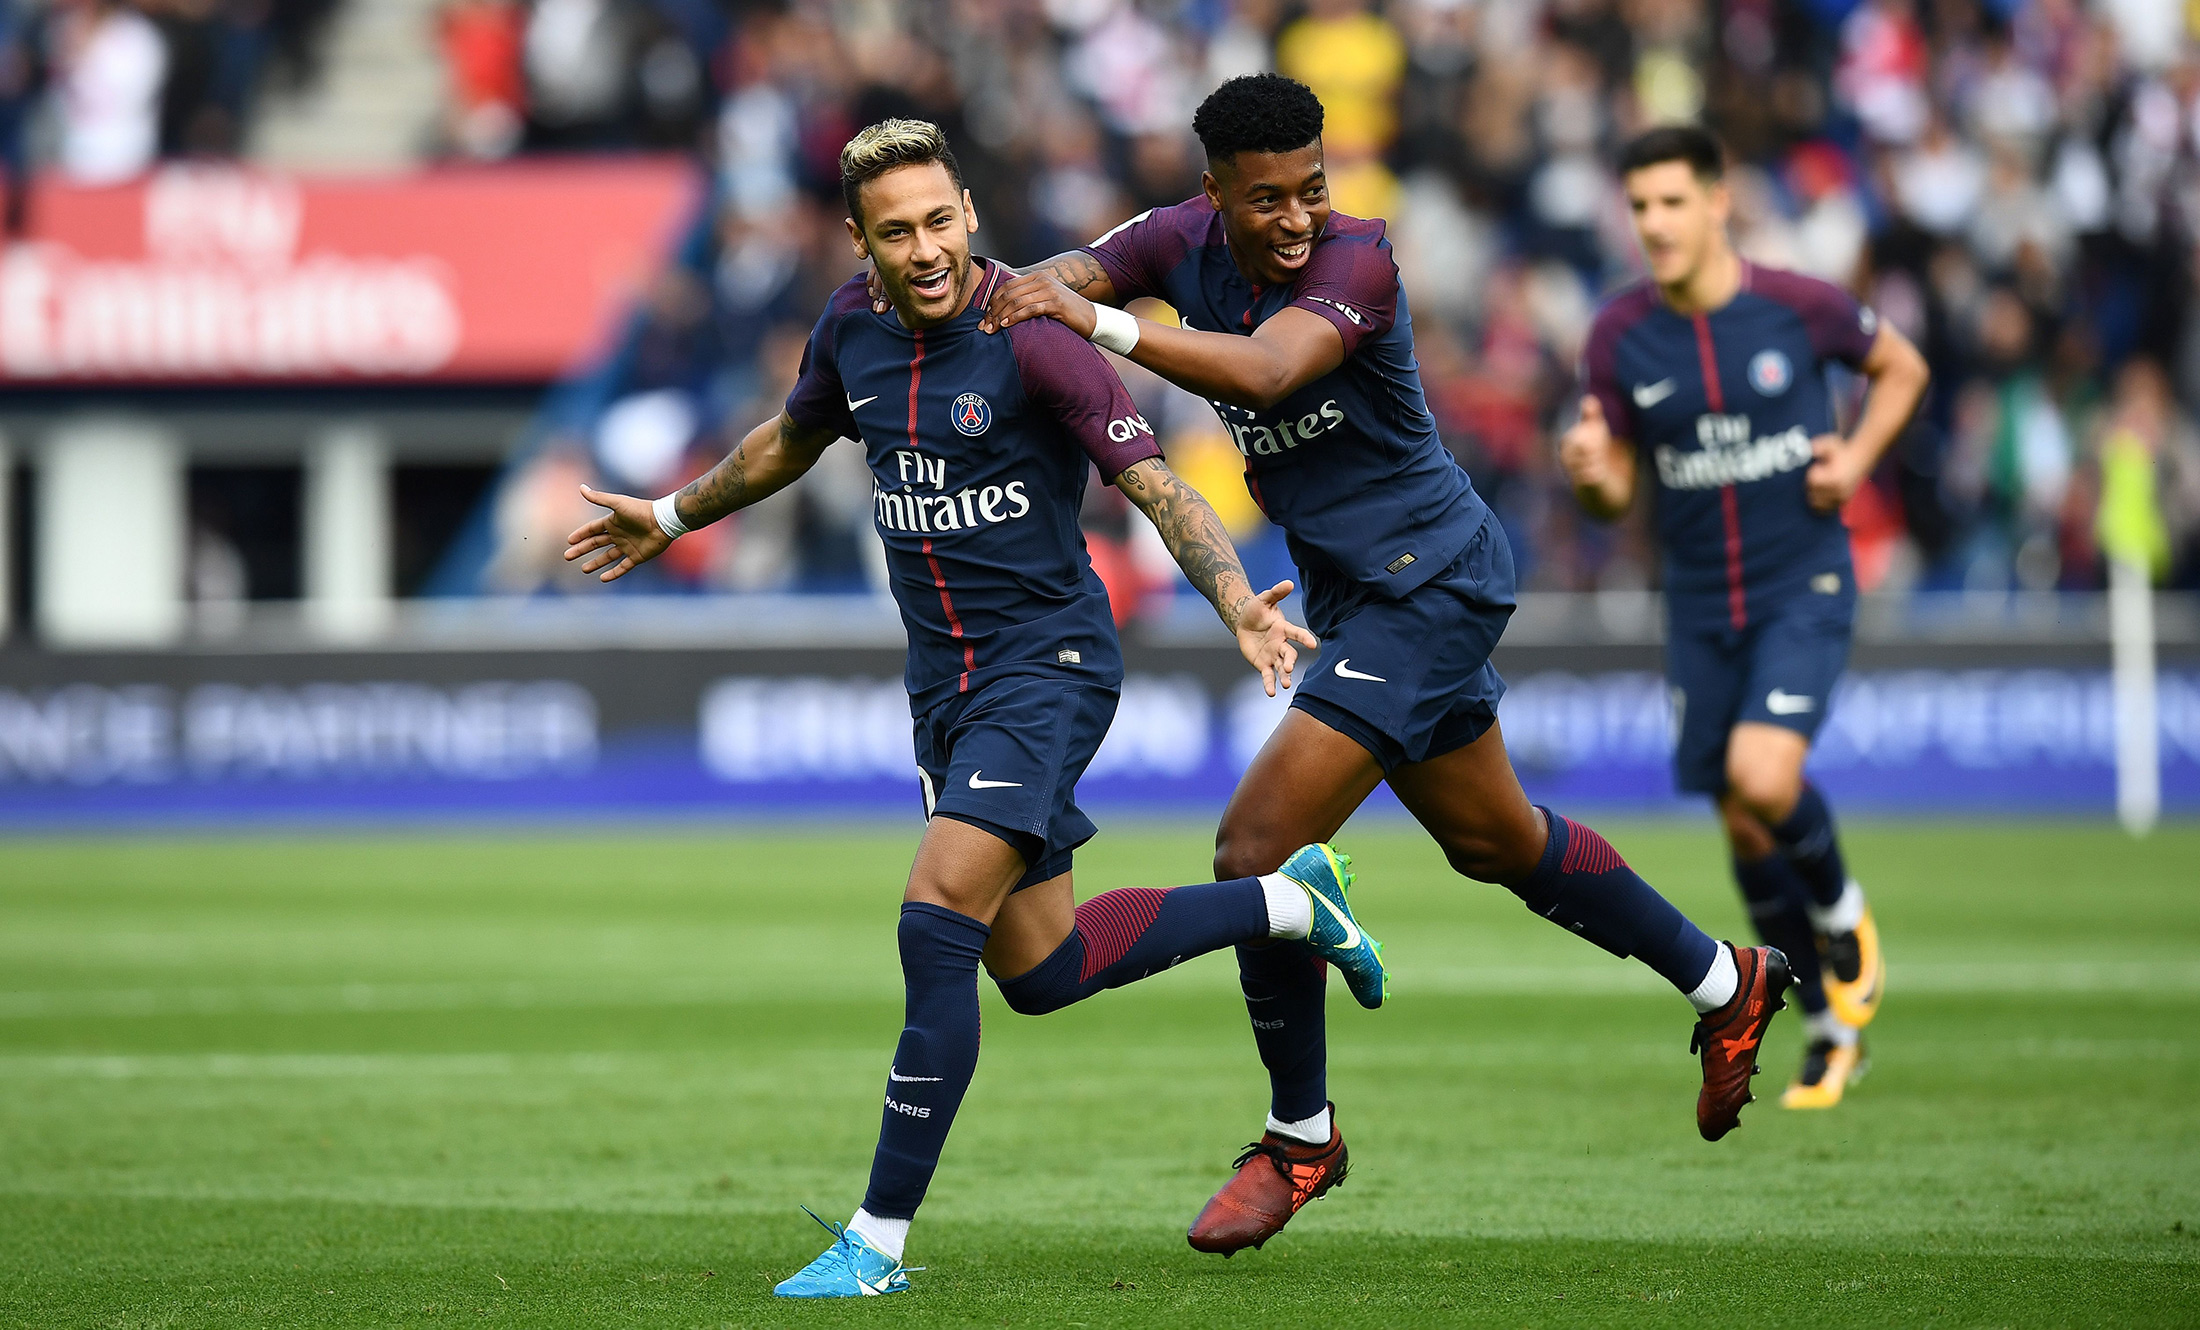 Can Neymar Score a $1.4 Billion Payout for French Soccer?